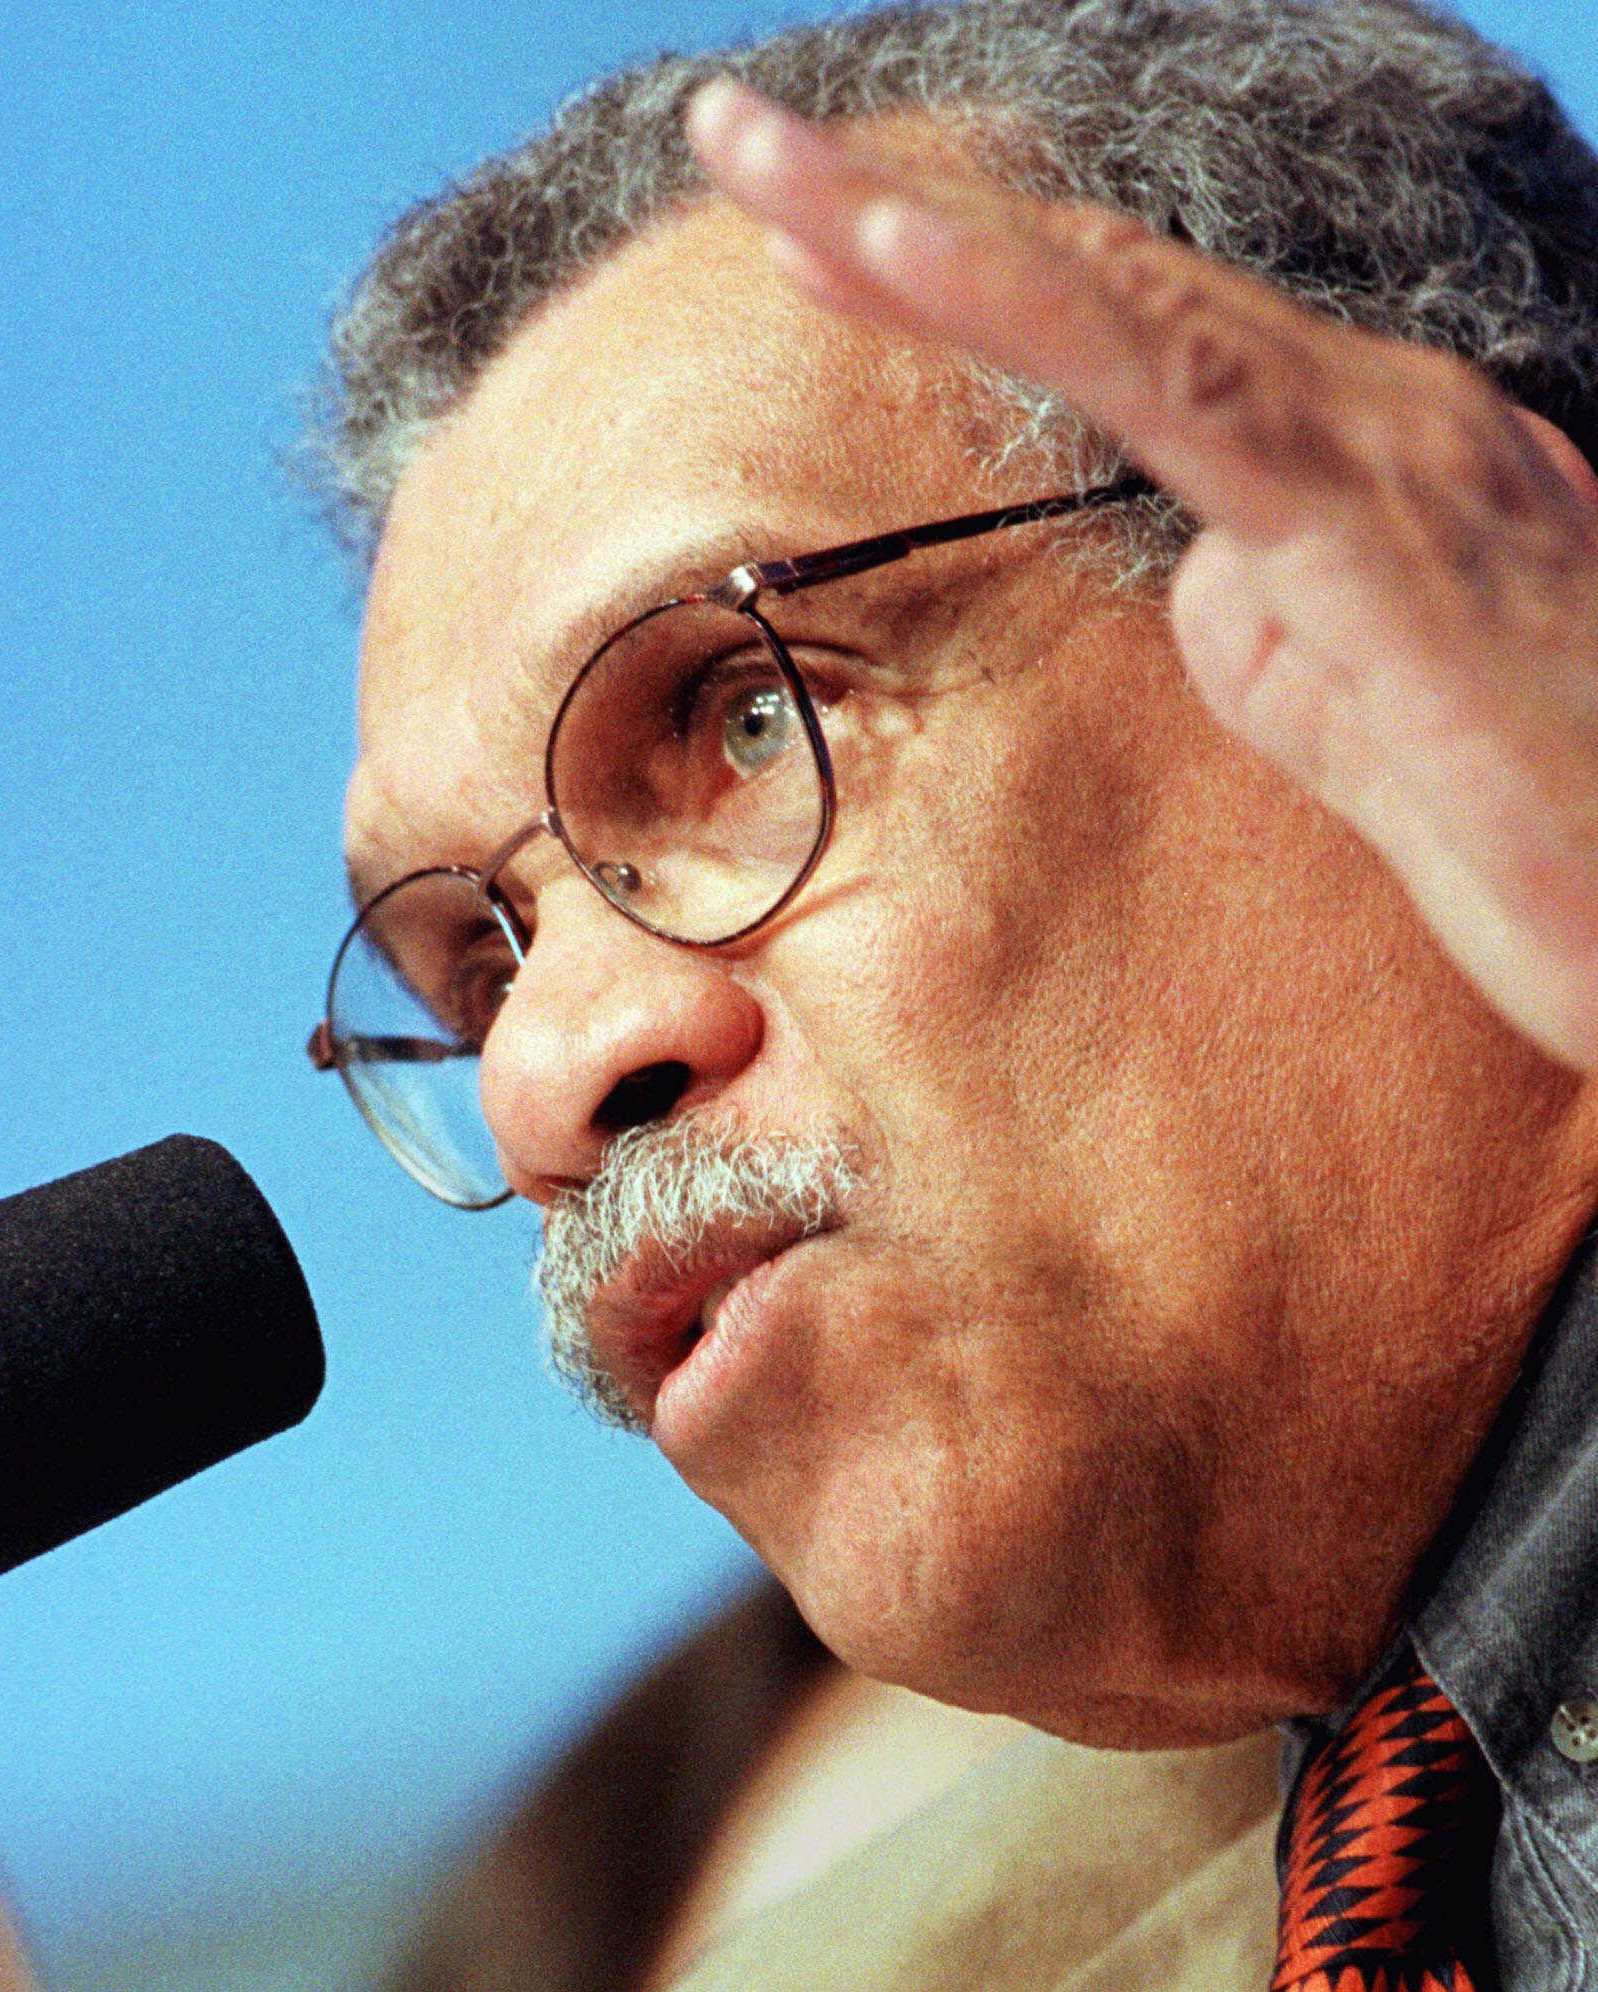 derek walcott essay Essay about review of mass man by derek walcott mass man by derek walcott , is a poem written in free verse, that describes some aspects of playing mass in a caribbean setting while alluding to the history behind the celebrations.